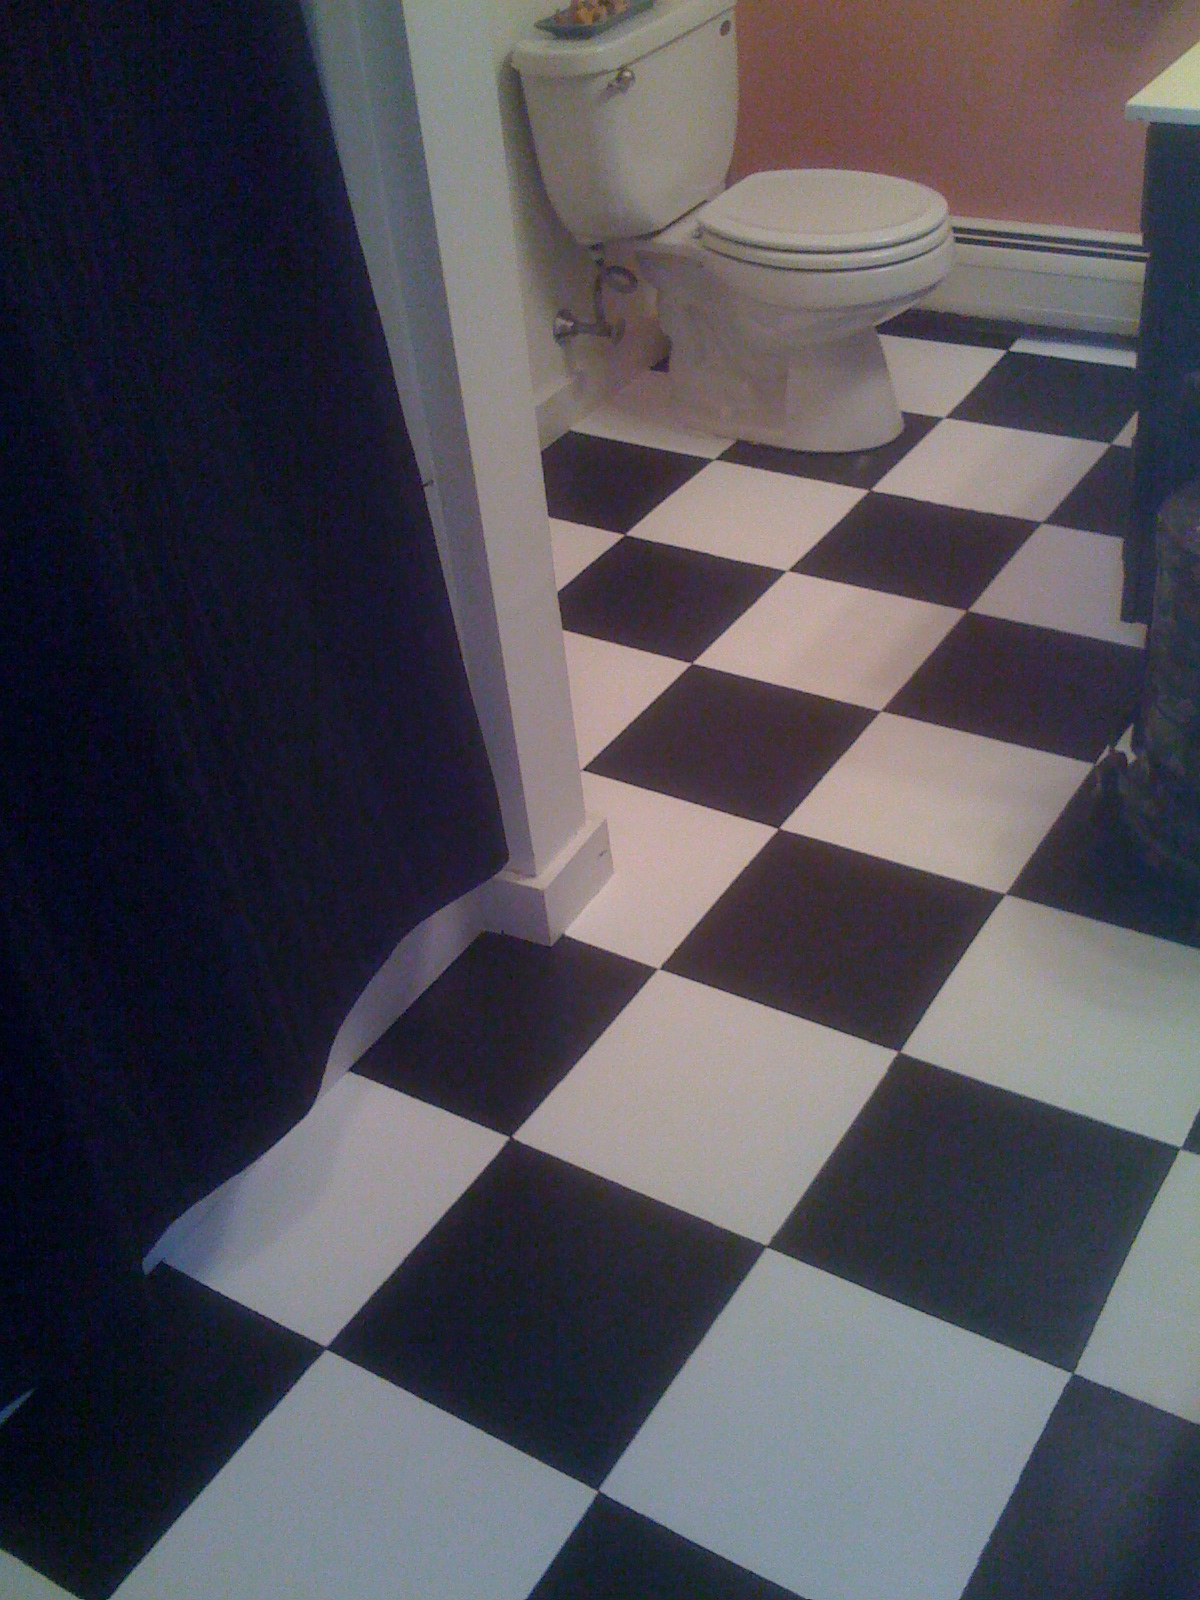 Painting Bathroom Floor Tiles Before And After Home Photos By Design